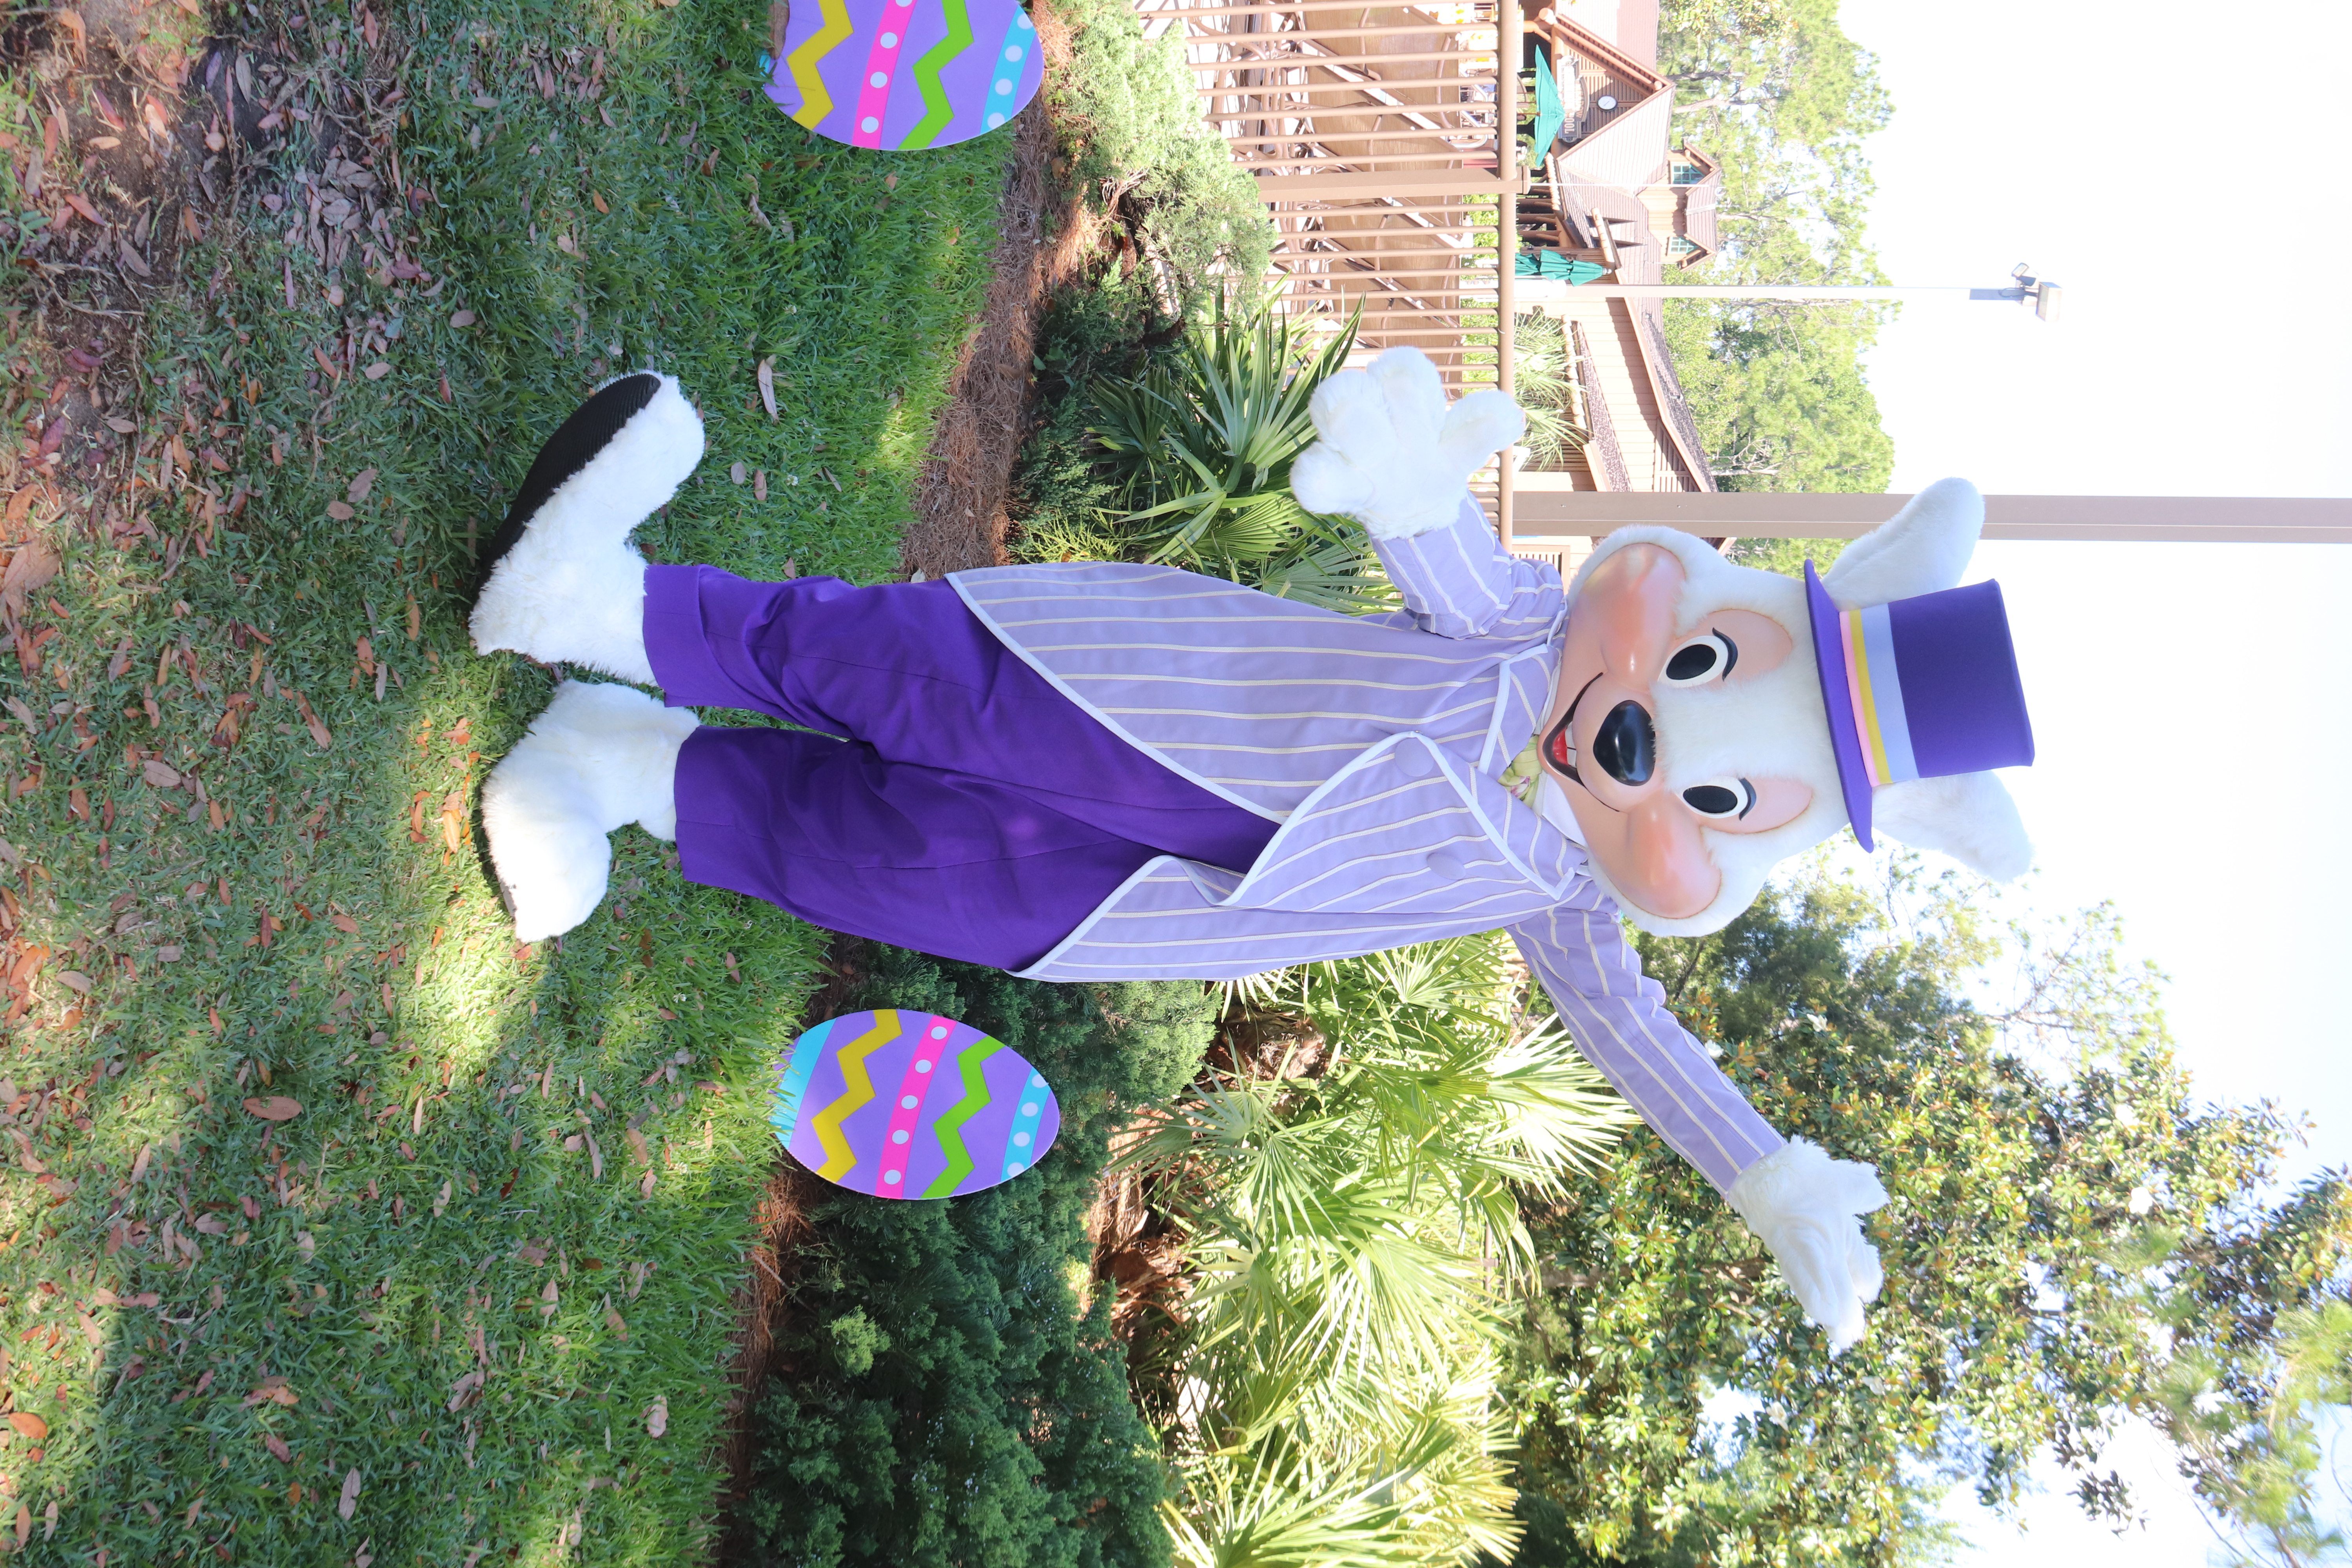 Mr. Easter Bunny